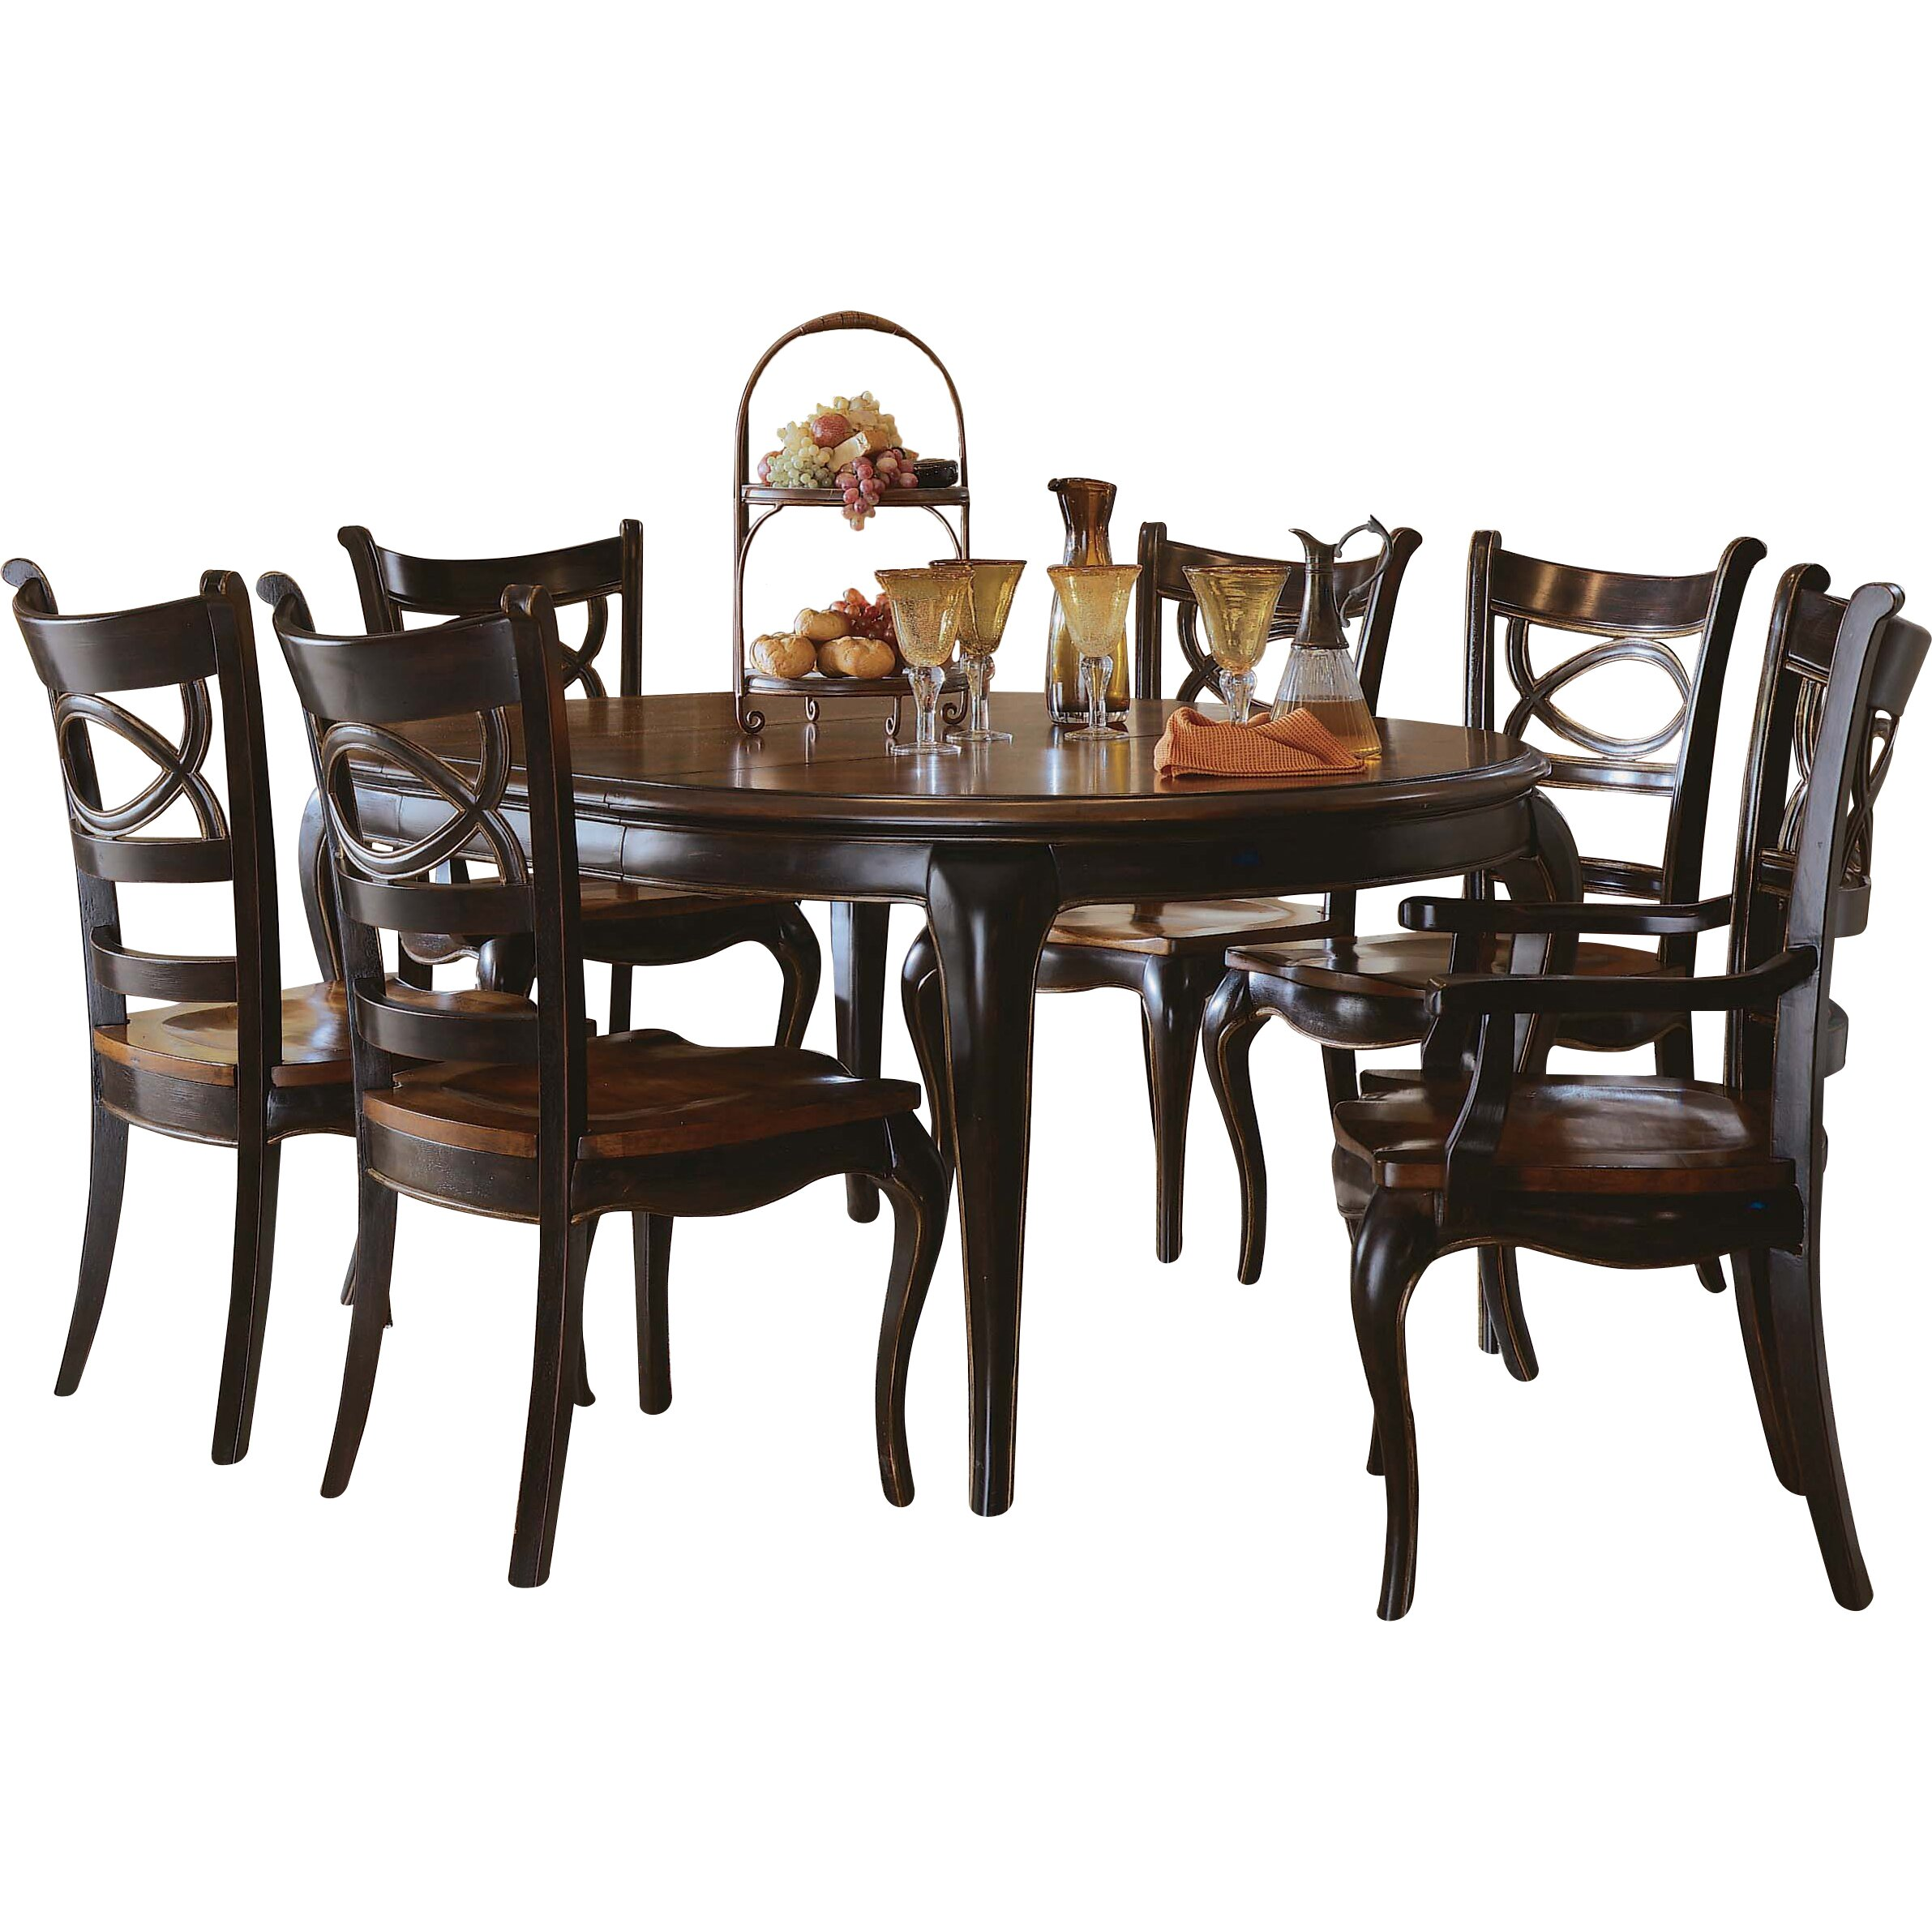 Hooker Furniture Preston Ridge Extendable Dining Table Reviews